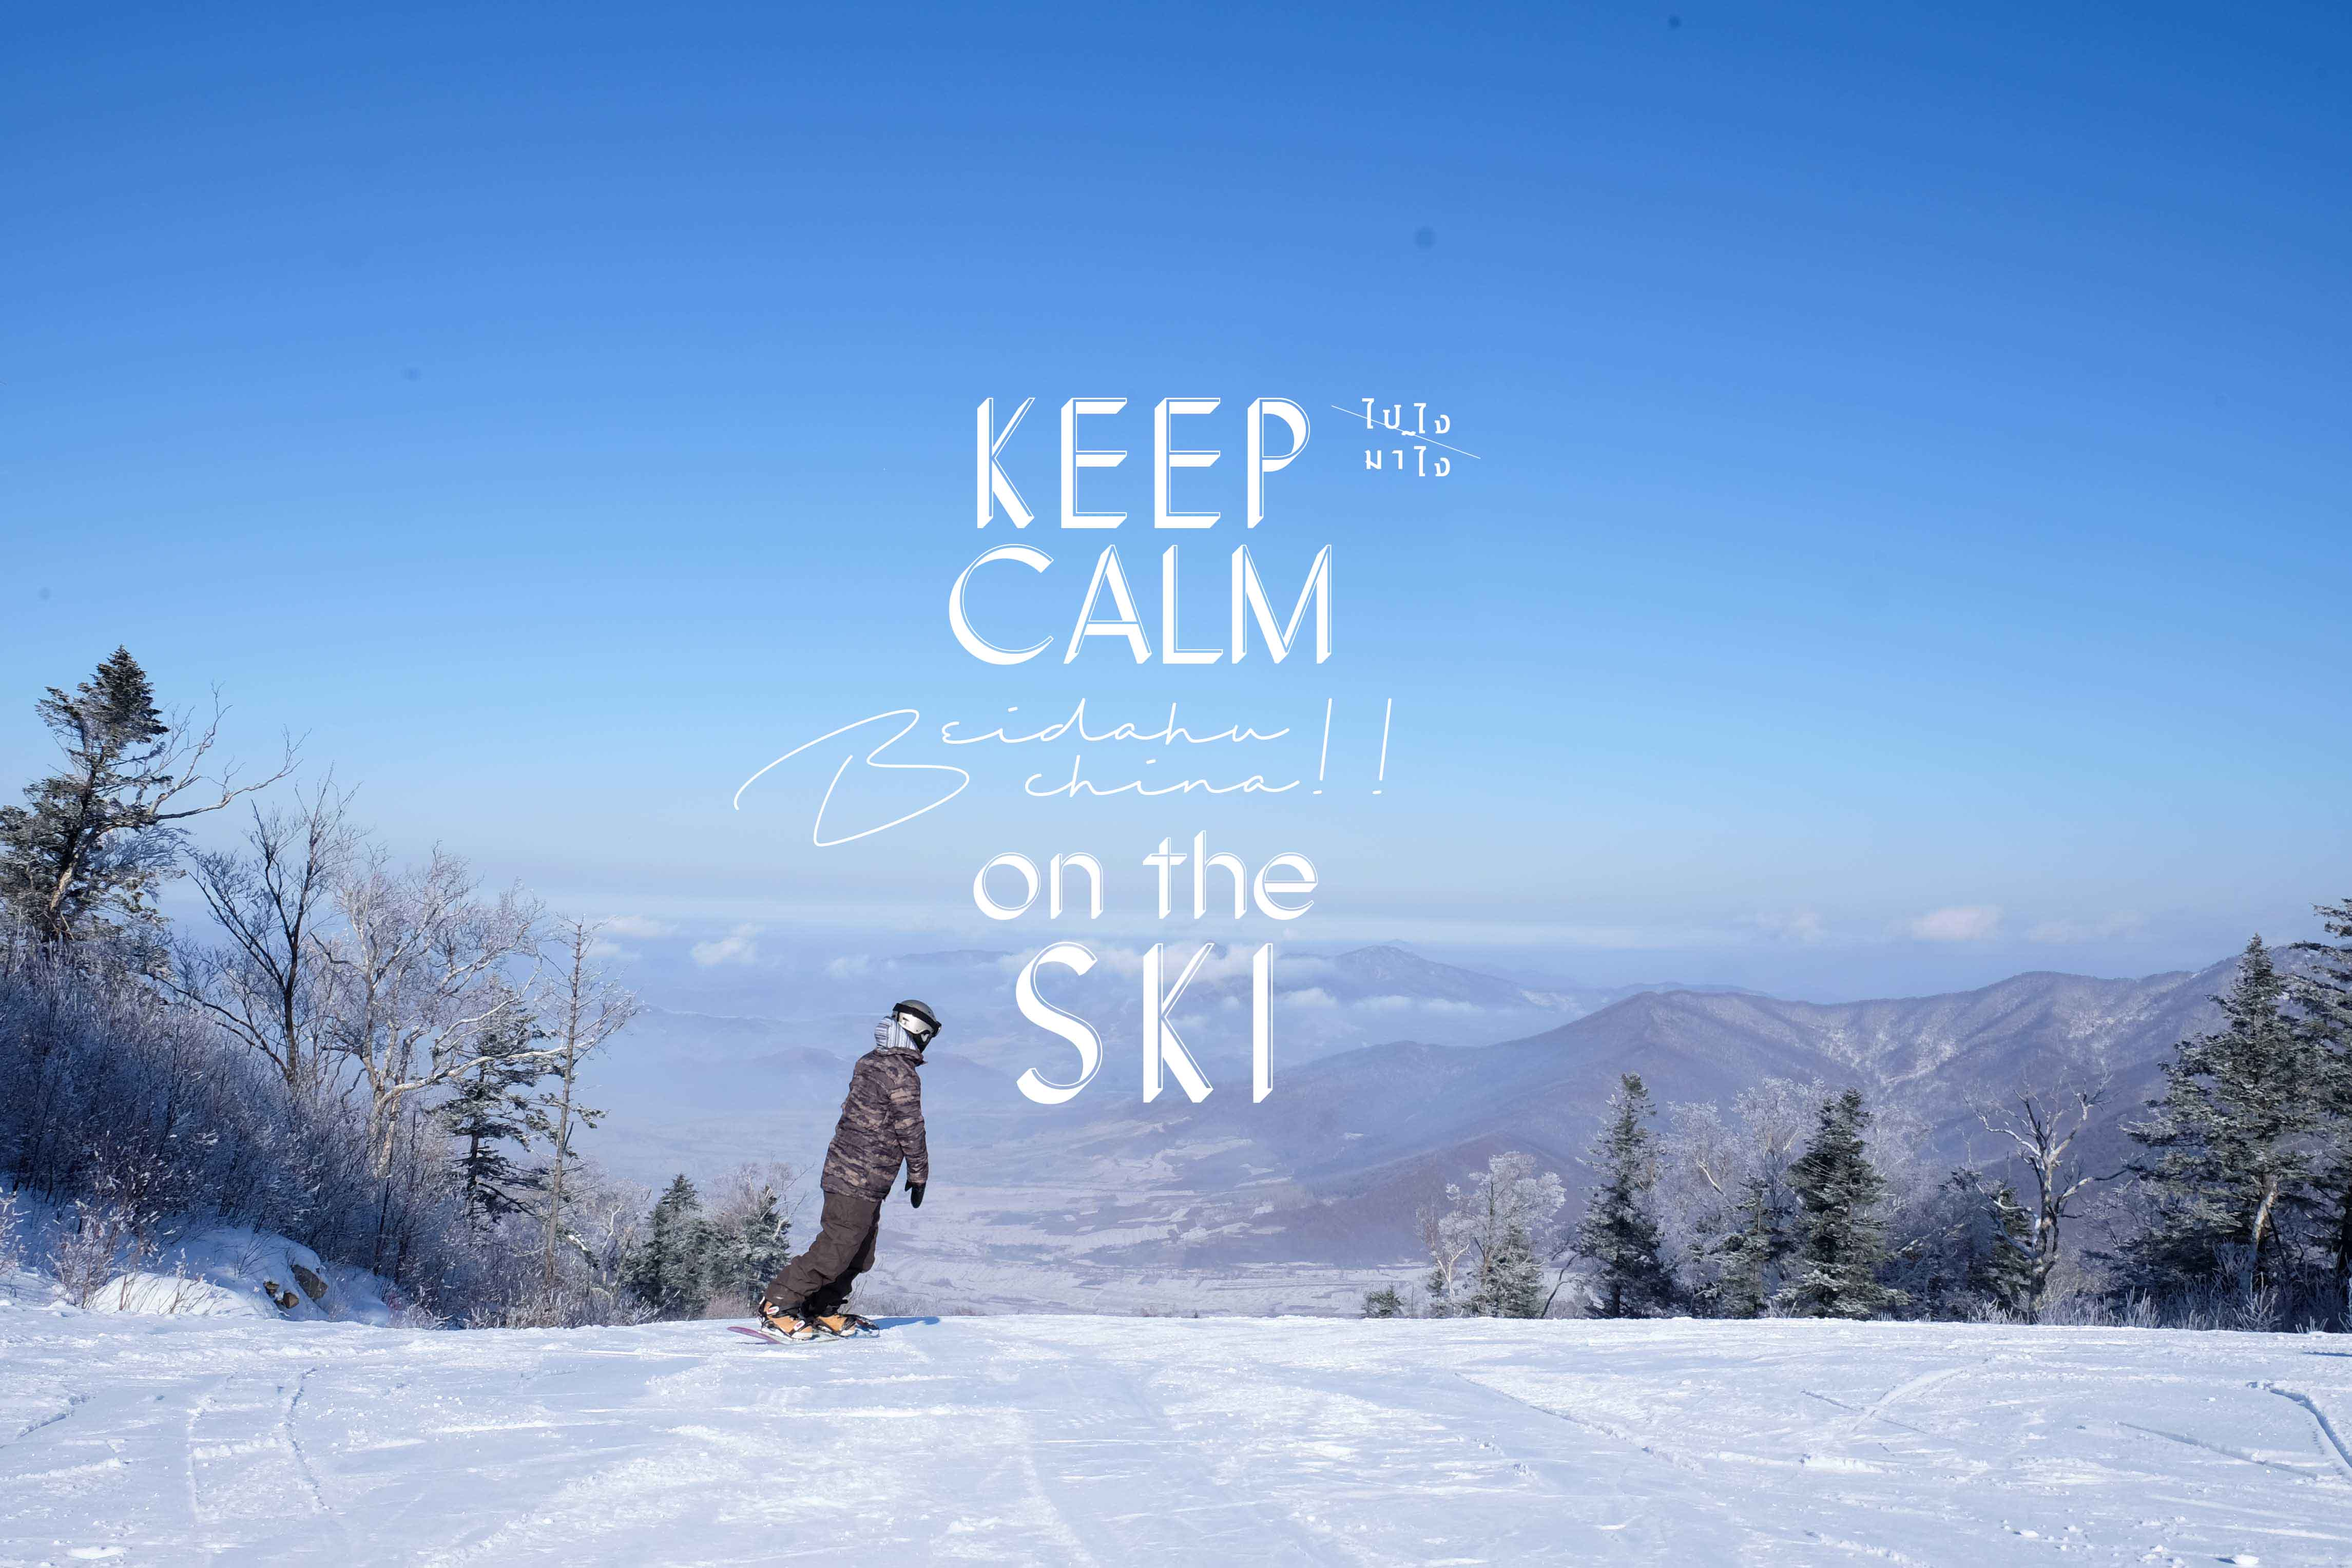 Keep Calm & Go Skiing! at Beidahu